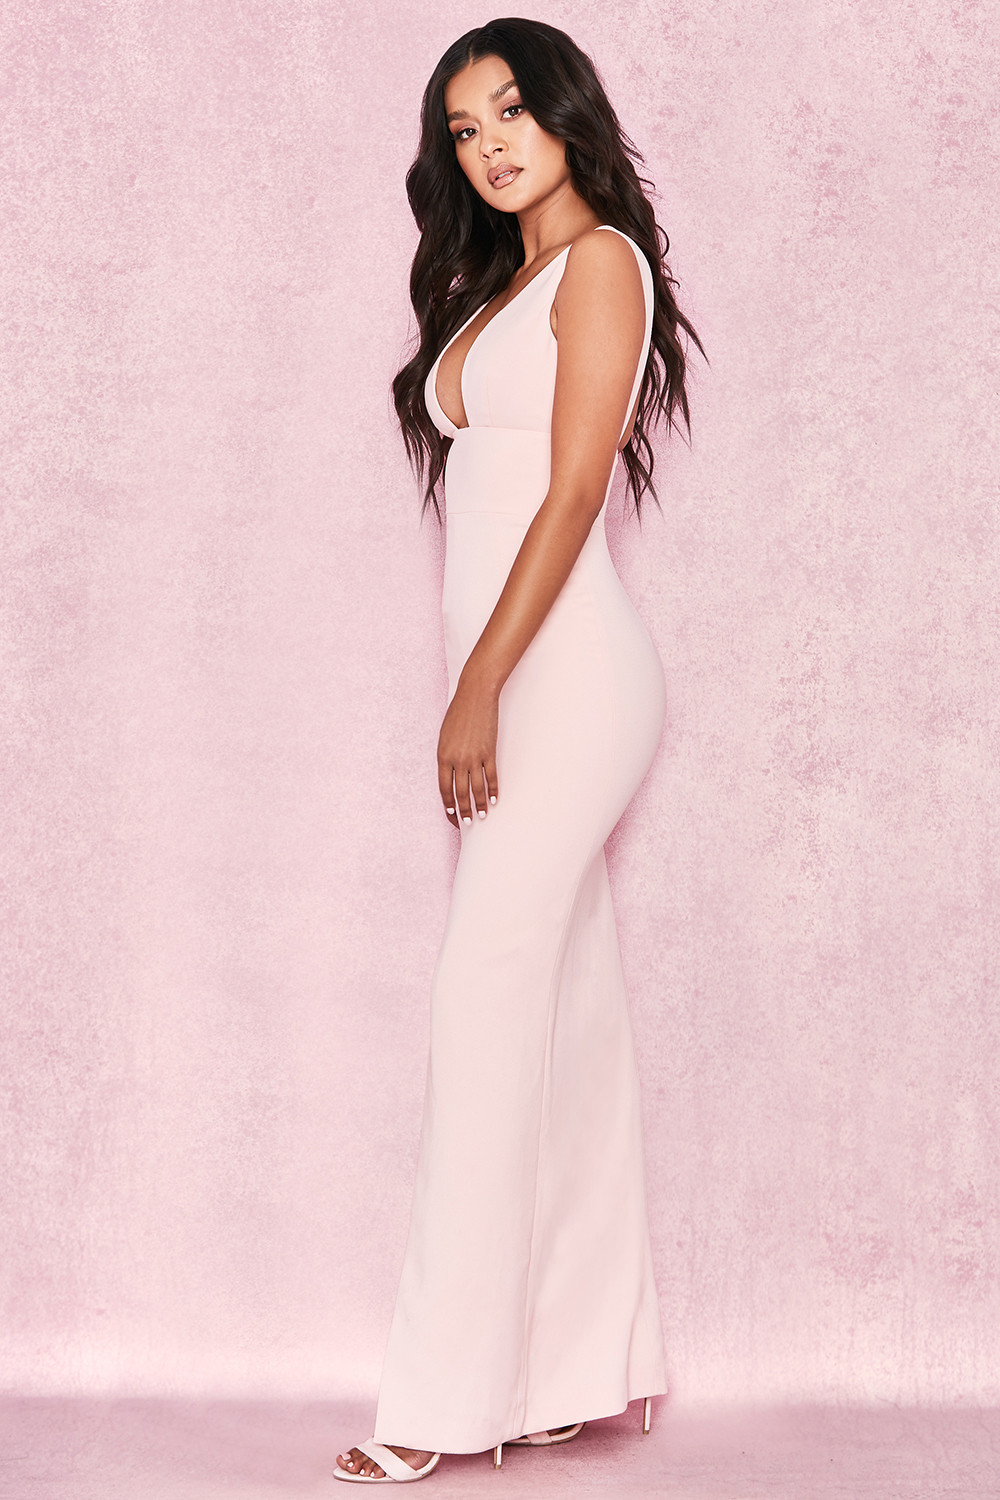 0b4c02f73ad Narelle Baby Pink Plunge Neck Maxi Dress. View larger image. View larger  image. View larger image. View larger image. View larger image